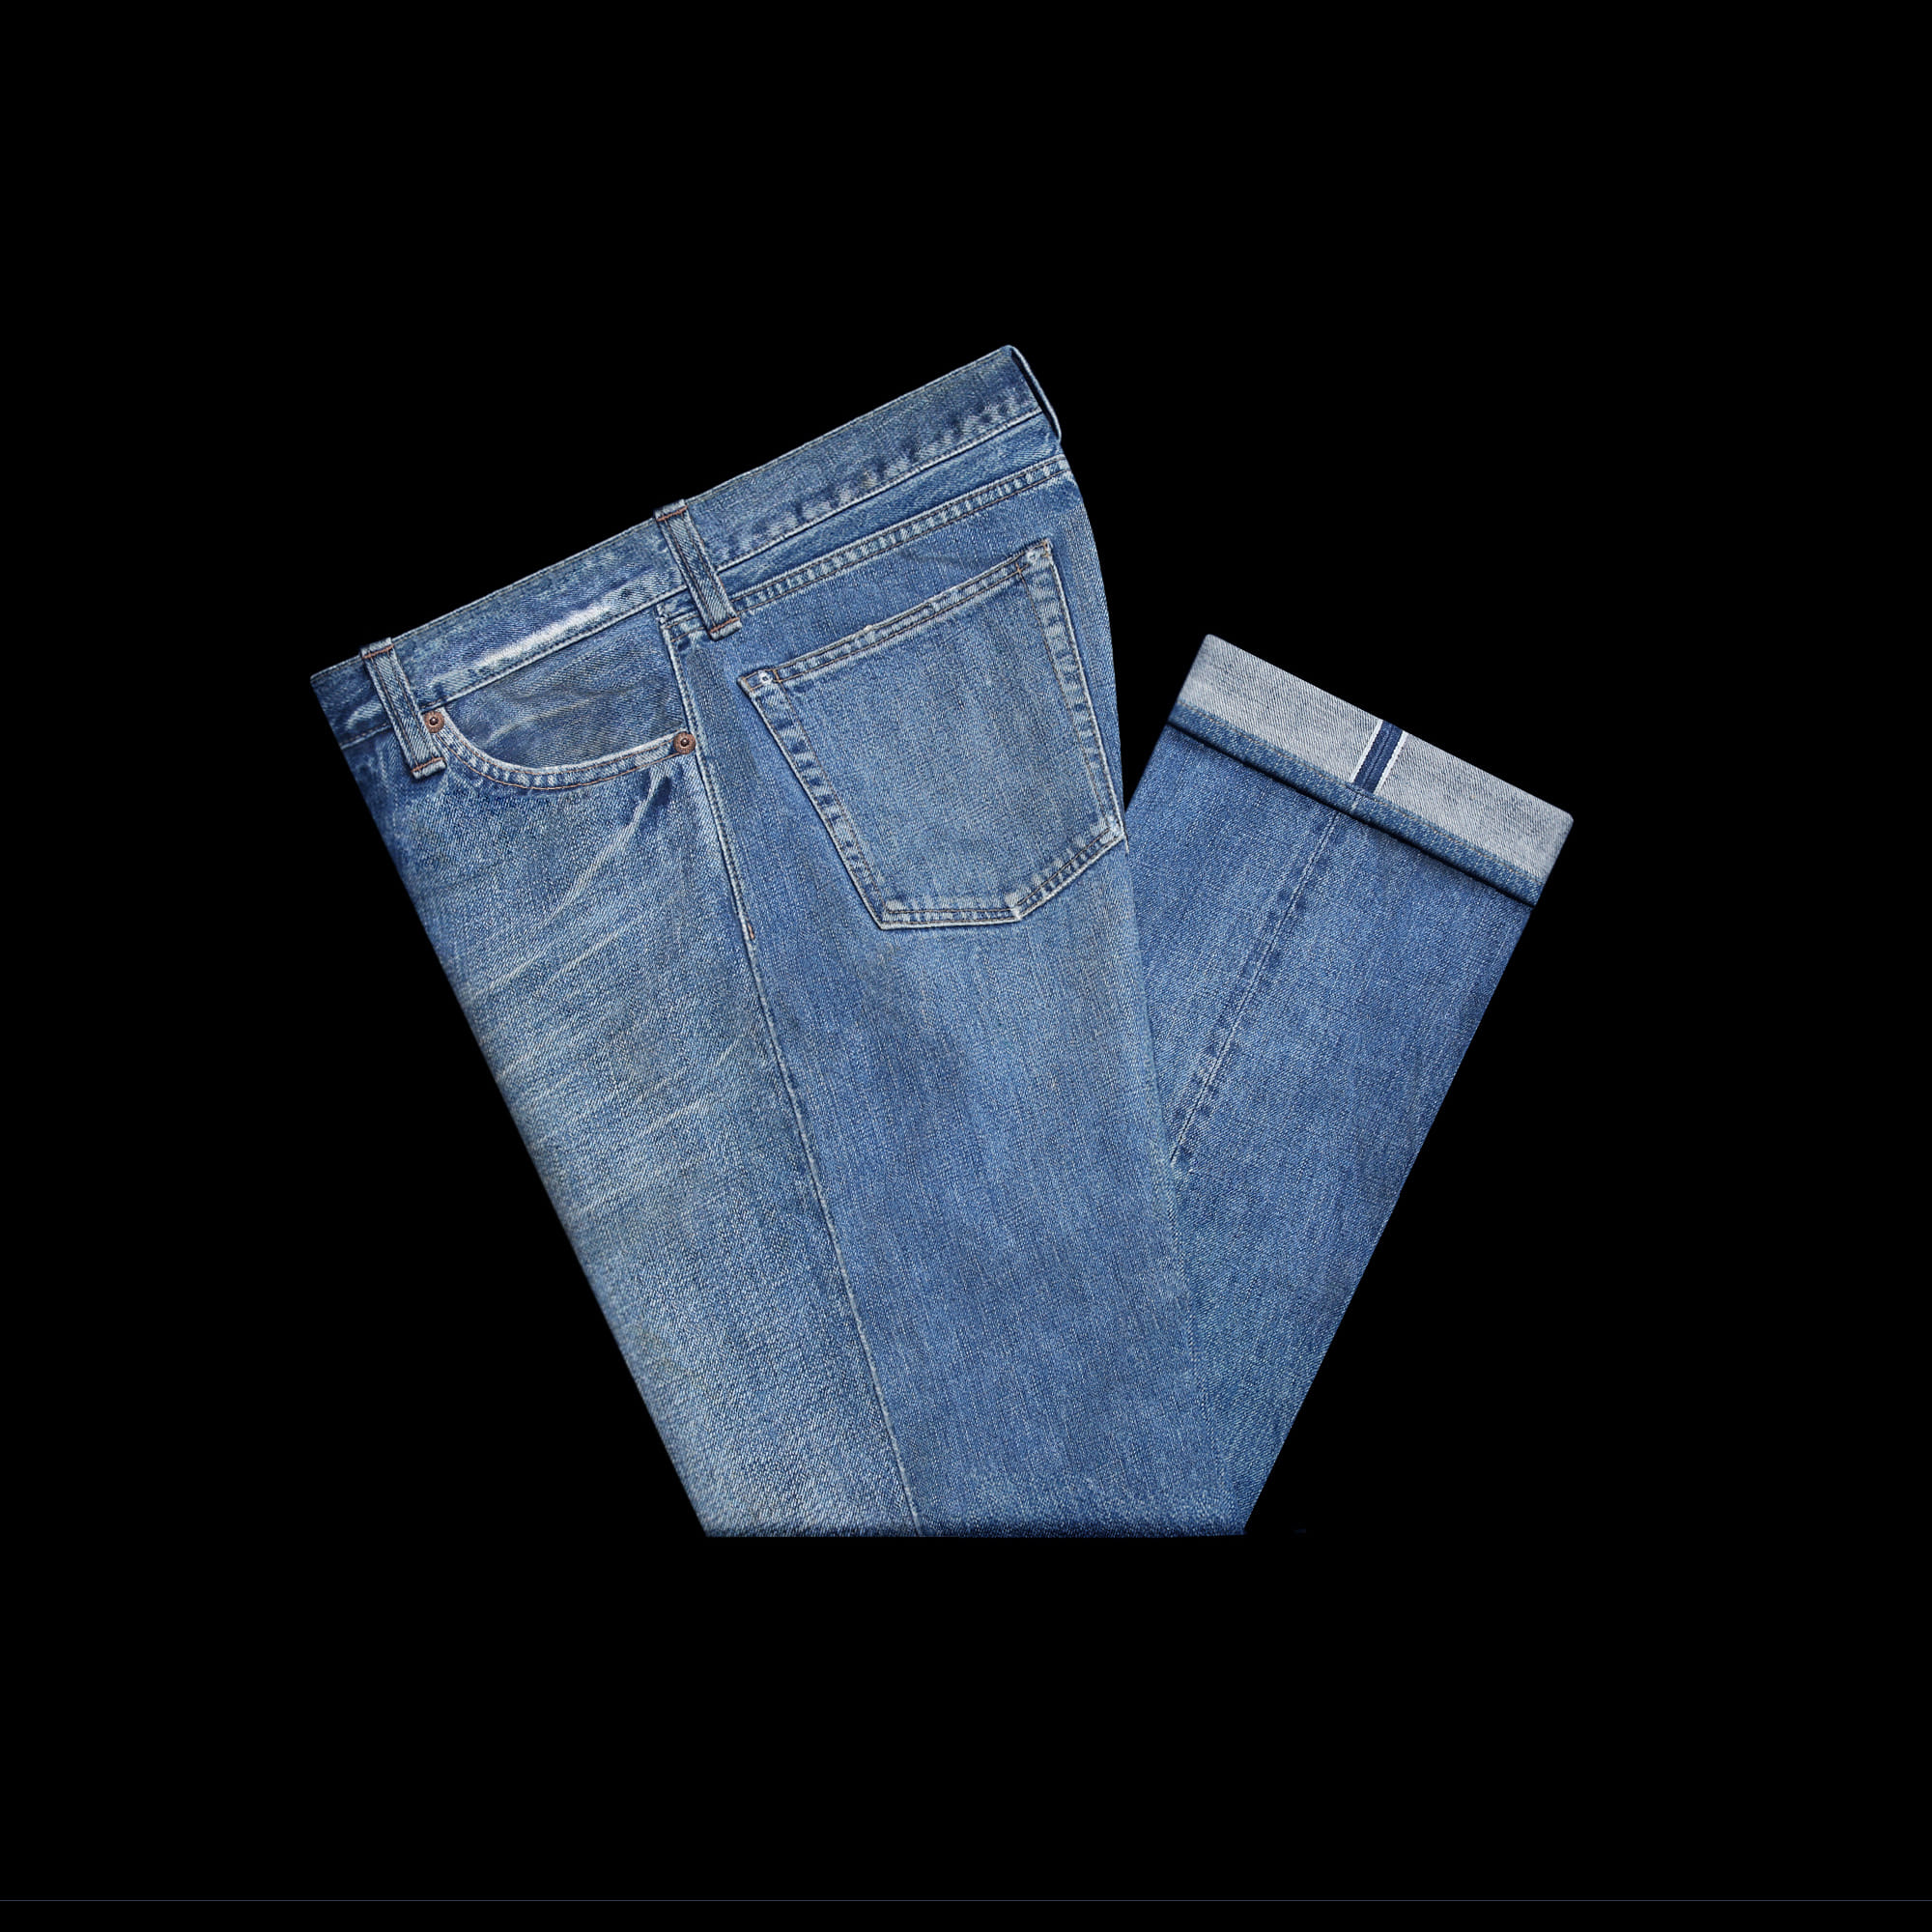 RRLCOTTON SELVEDGE DENIM